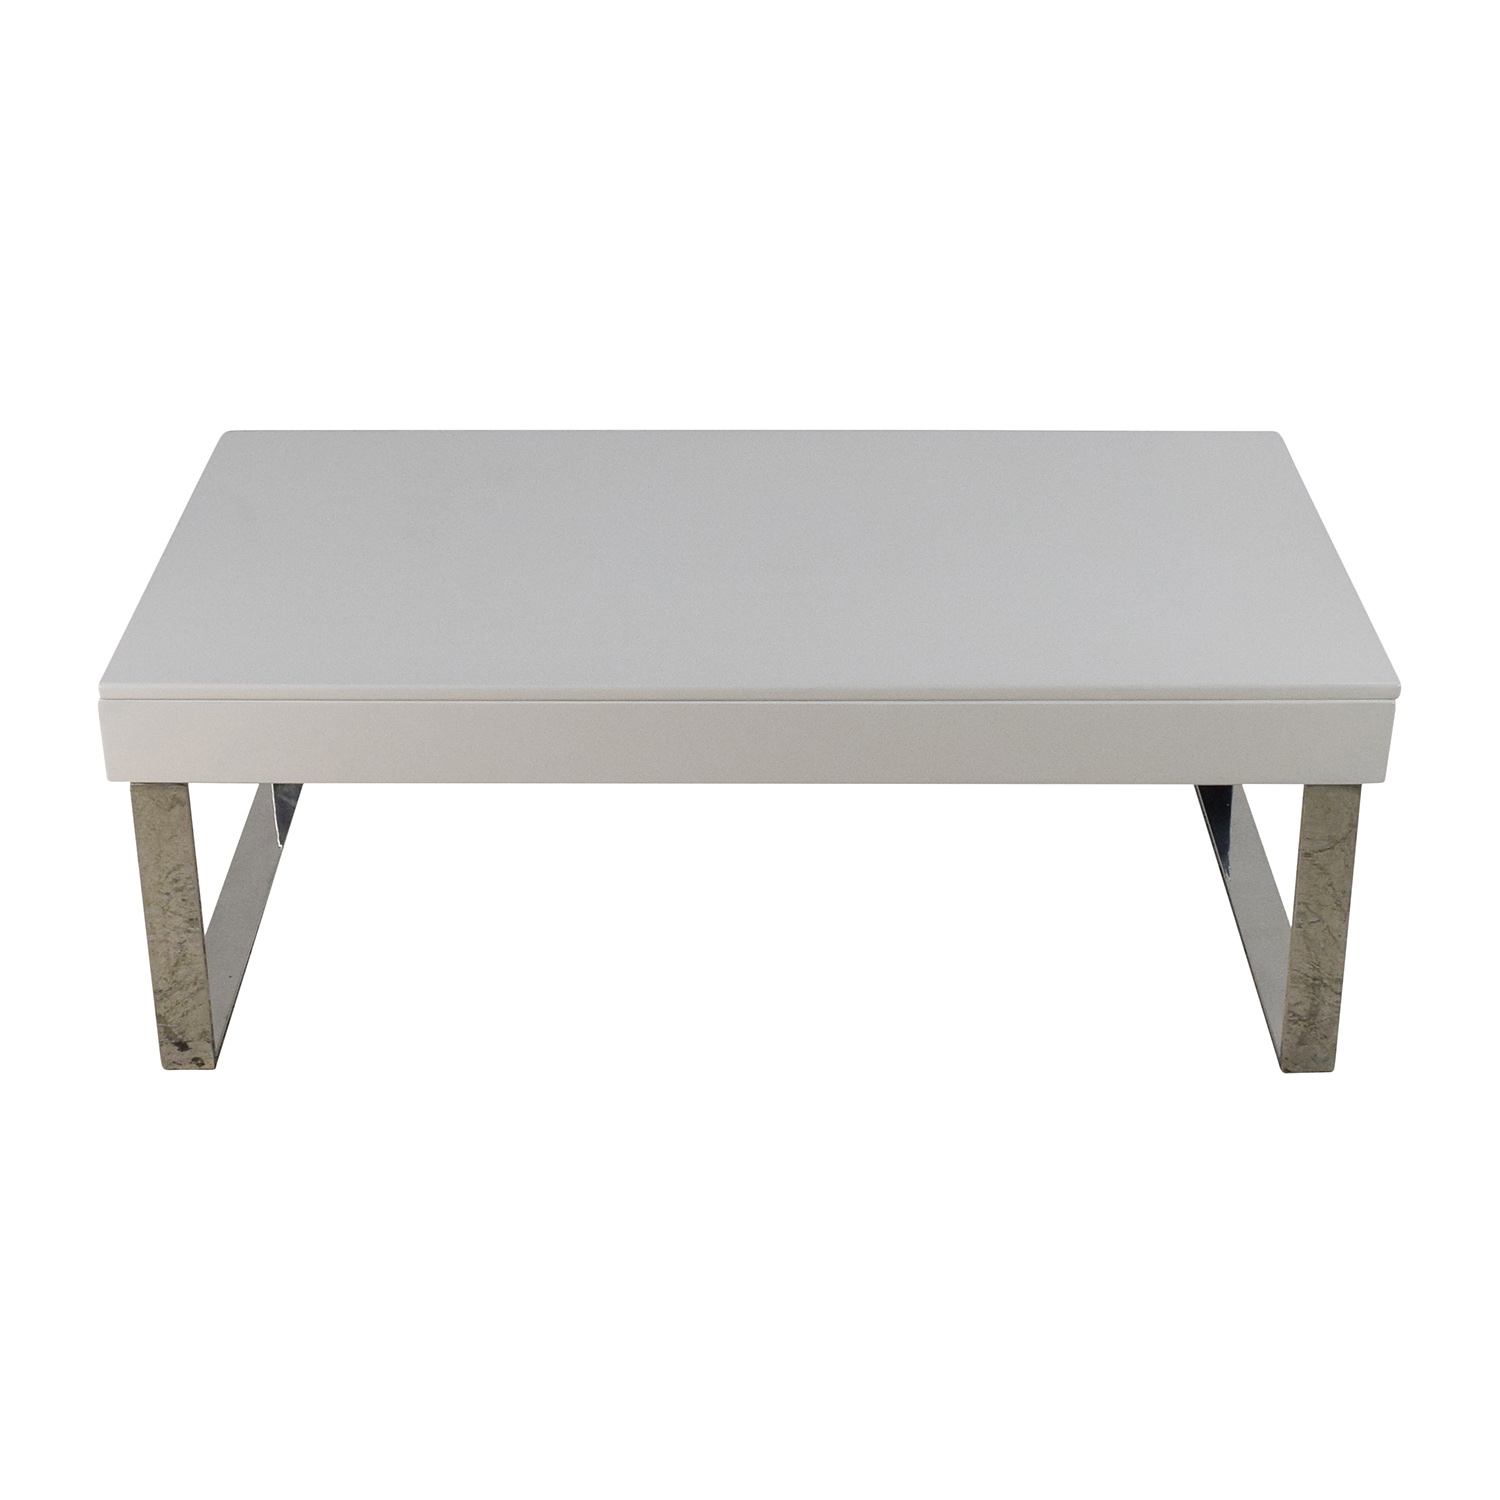 71% OFF Halmstad Modern White Lift Top Coffee Table Tables